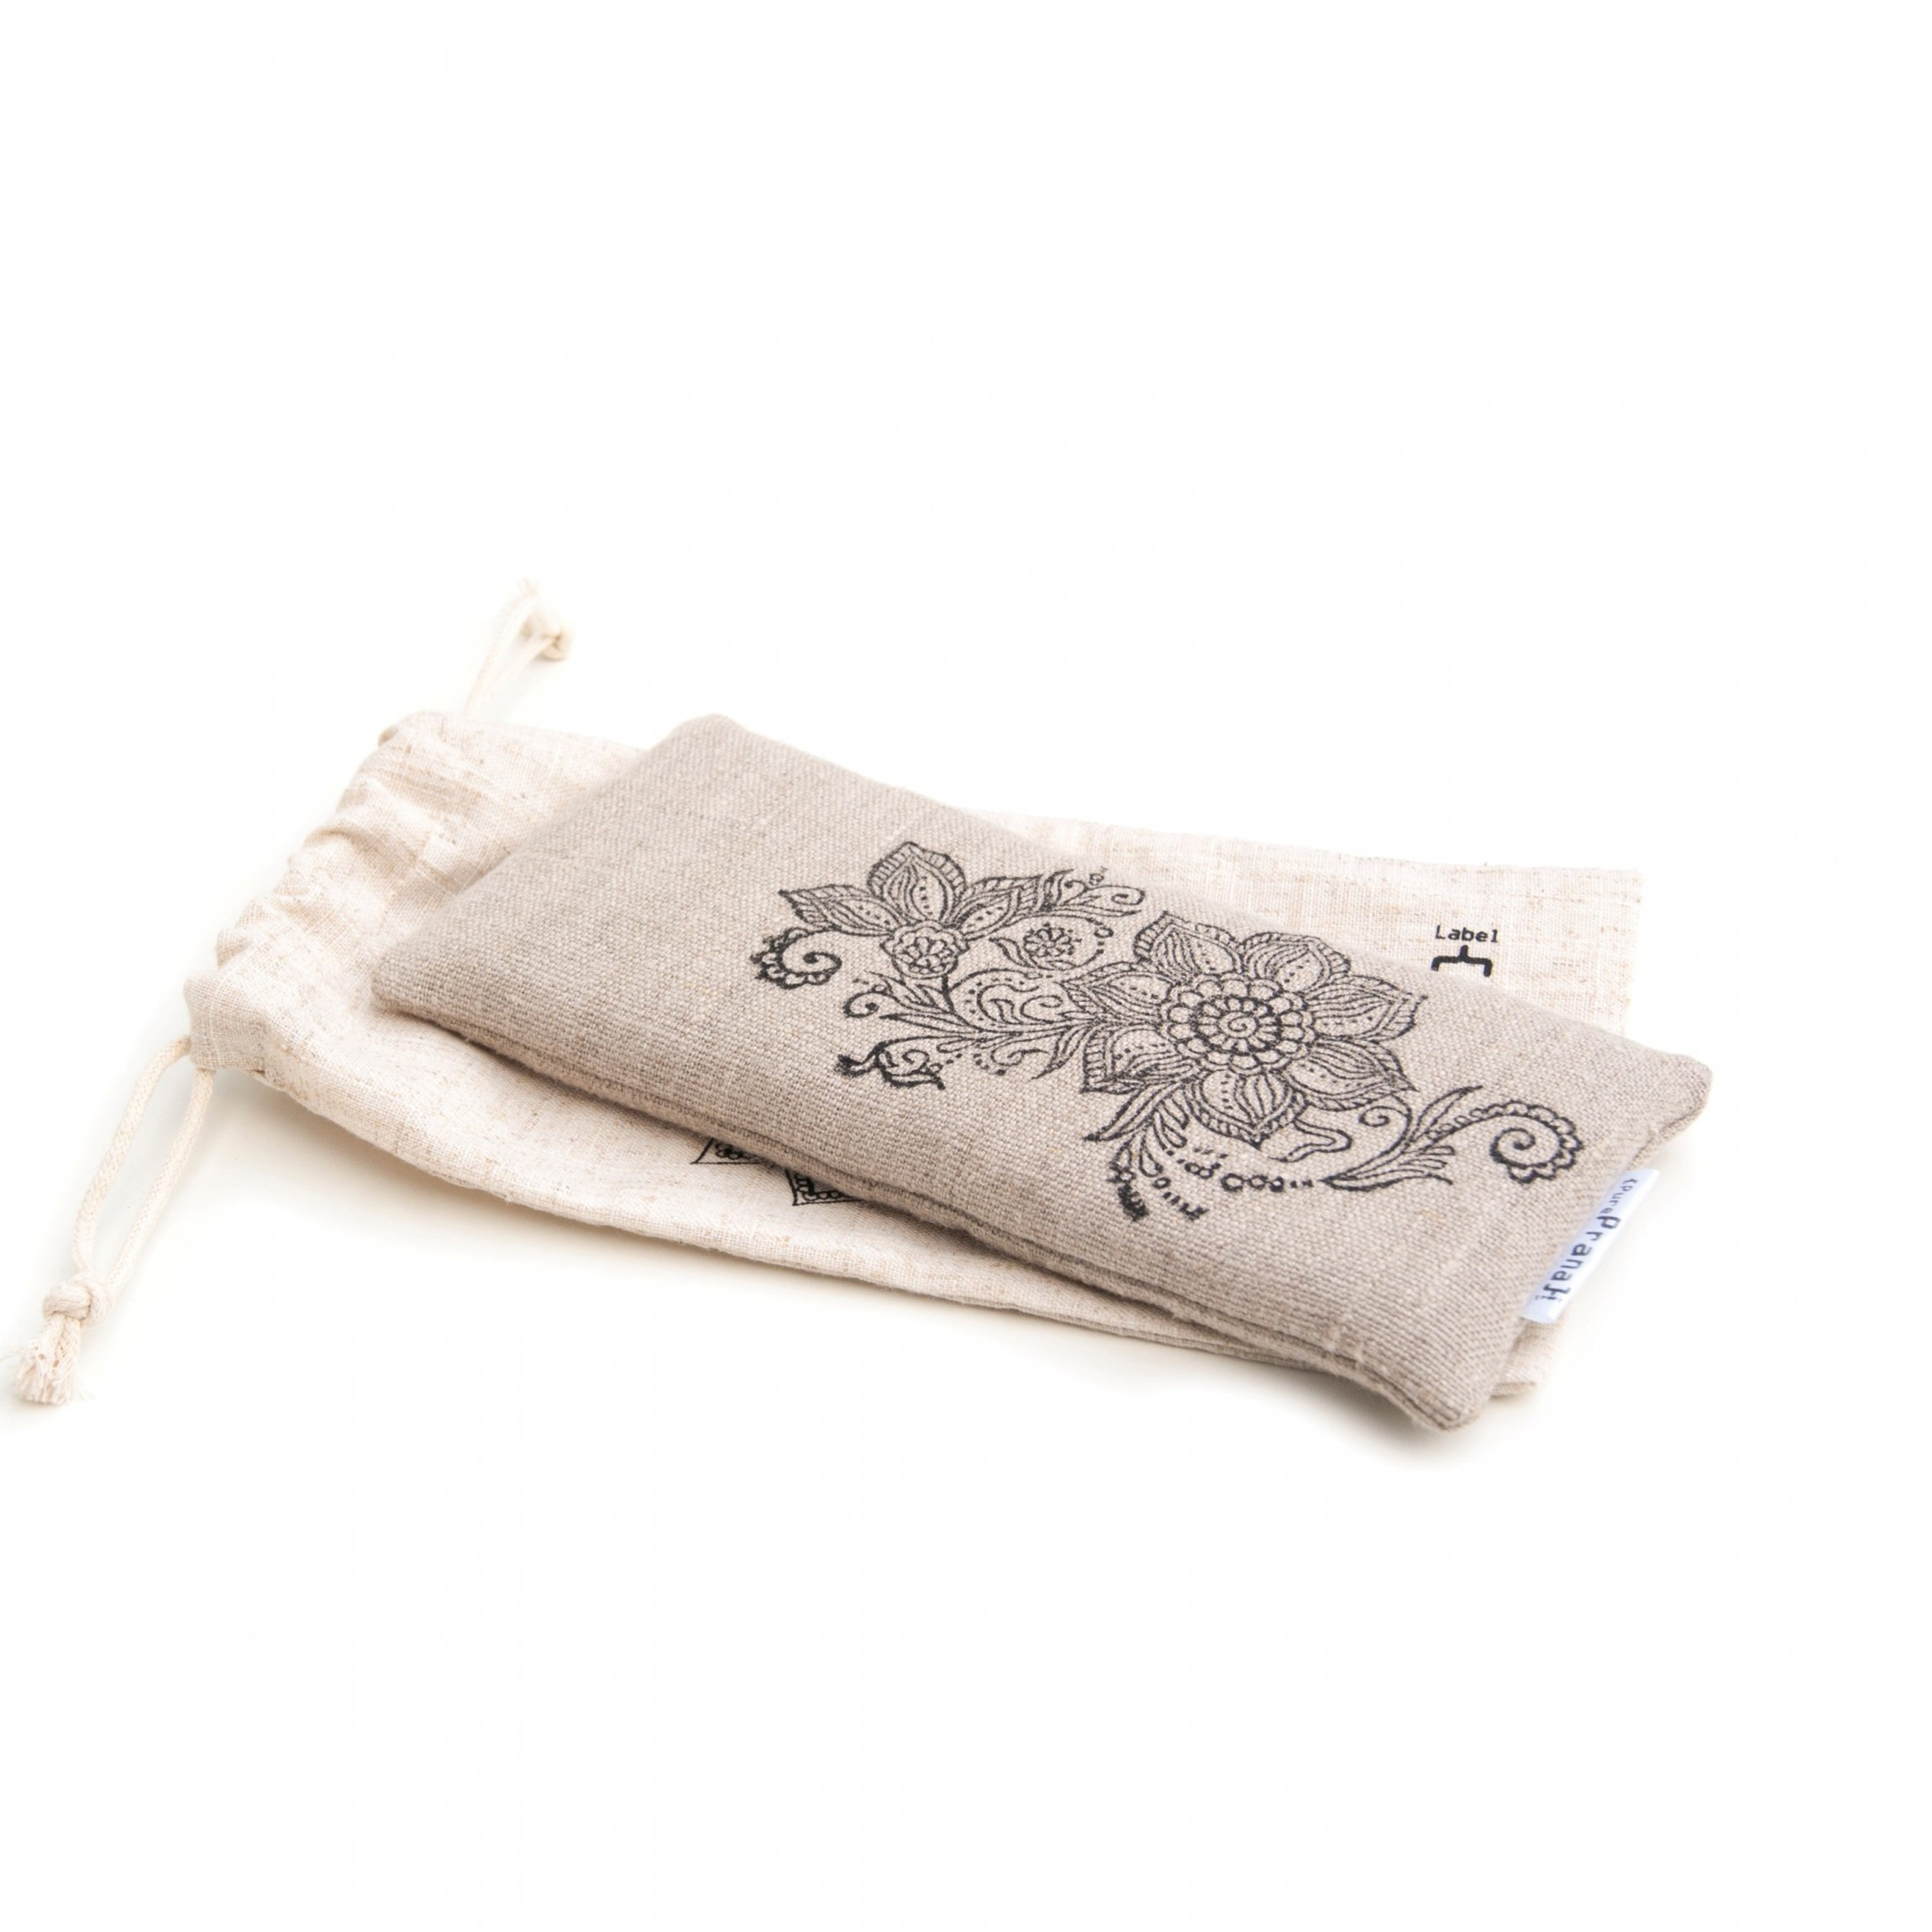 Yoga eye pillow natural non toxic flax linen, filled with organic materials.